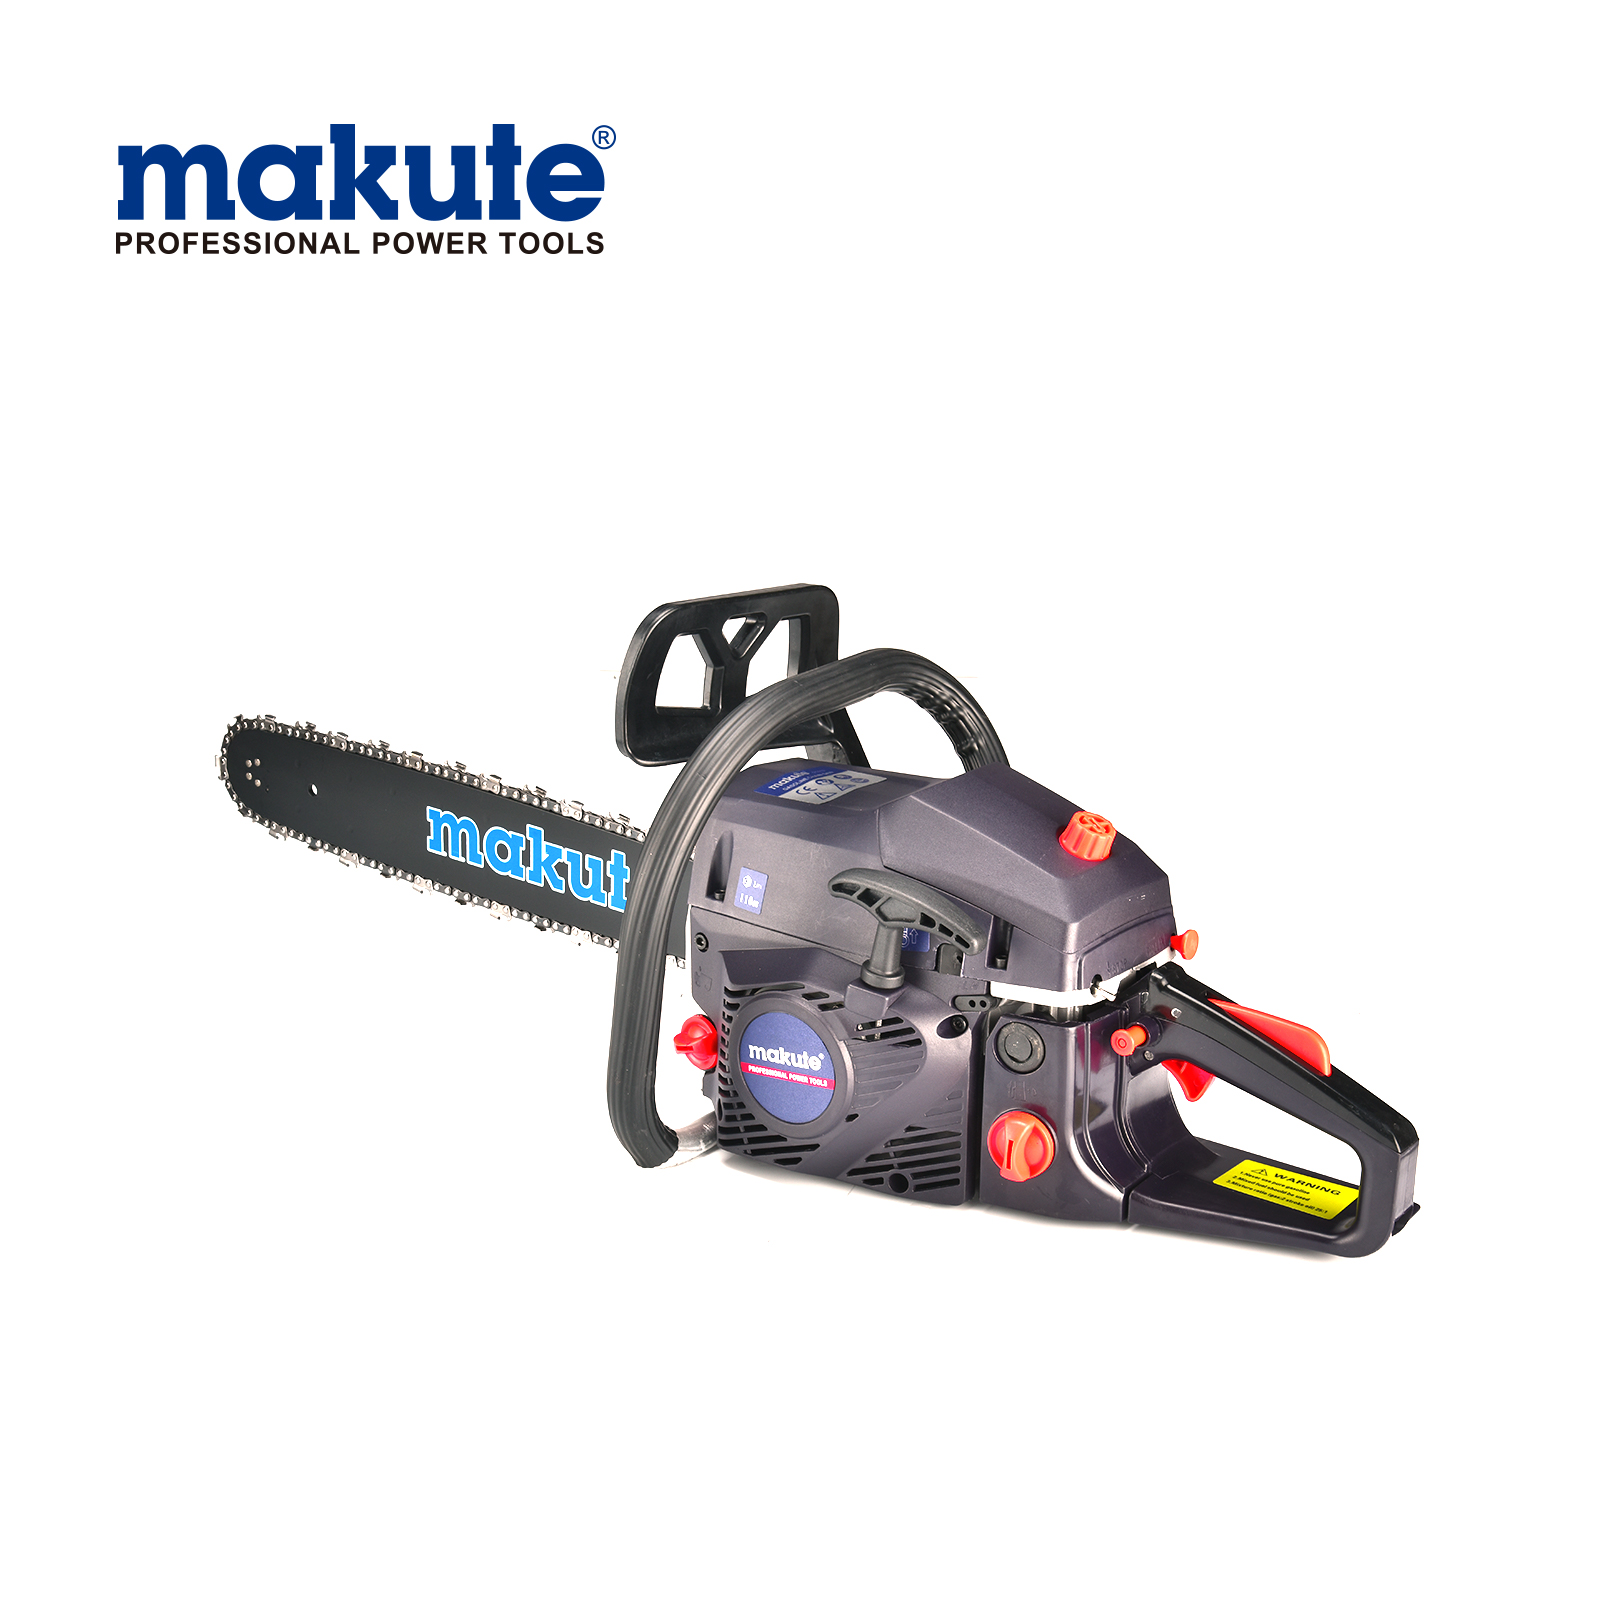 Makute 2100w 2.45n industrial gasoline chain saw